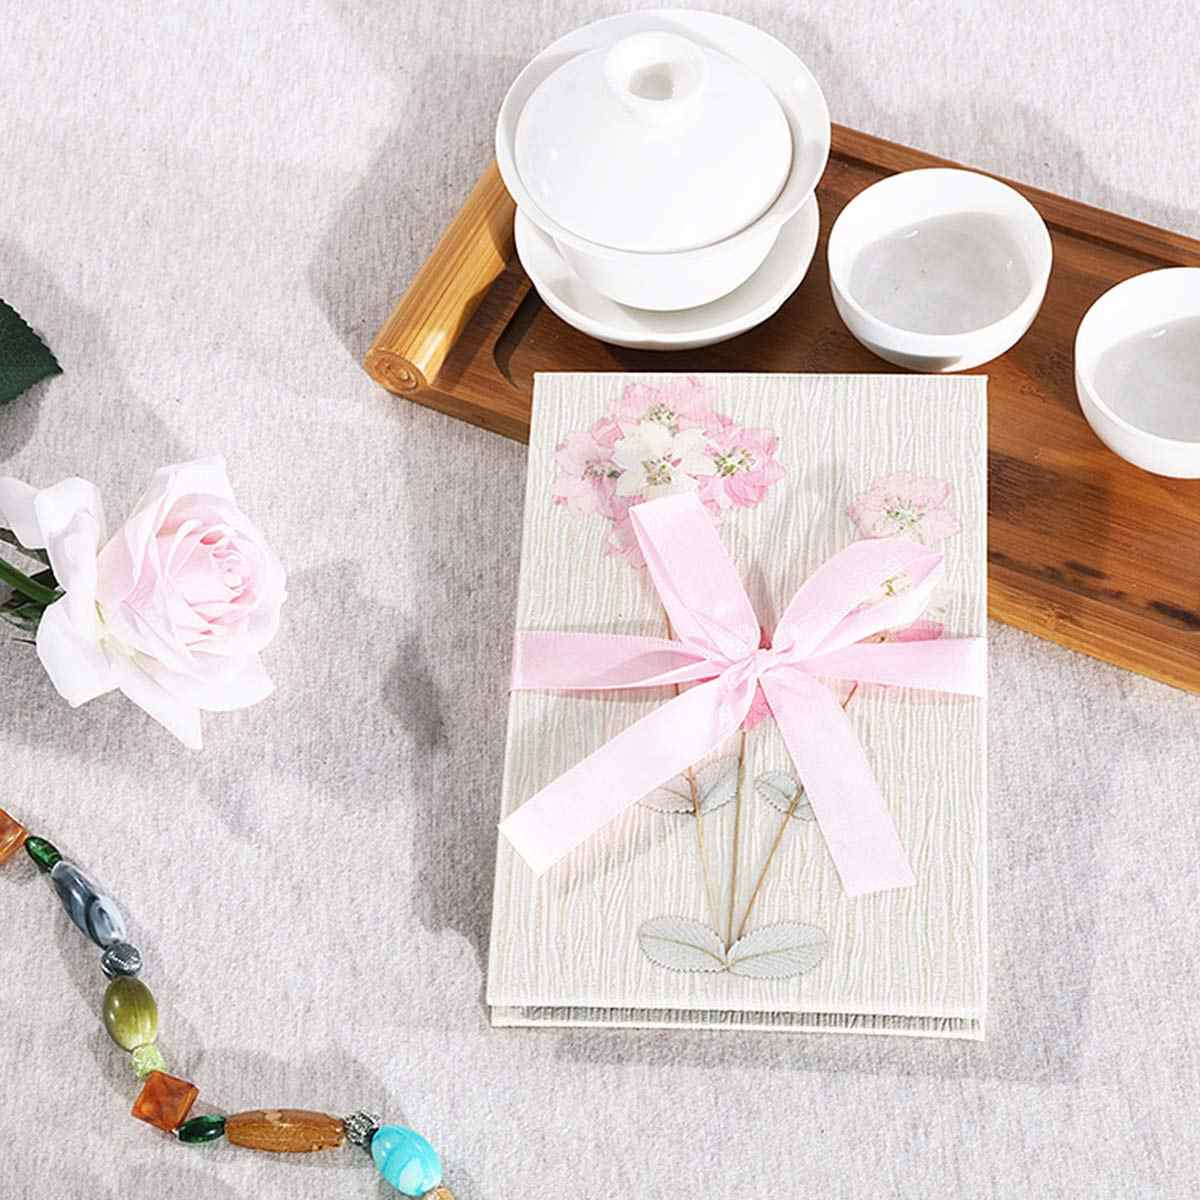 Photo Album Beautiful Black Insert Paper Diy Photo Album Photo Storage Handwork Diy Photo Album For Lady Woman Girl